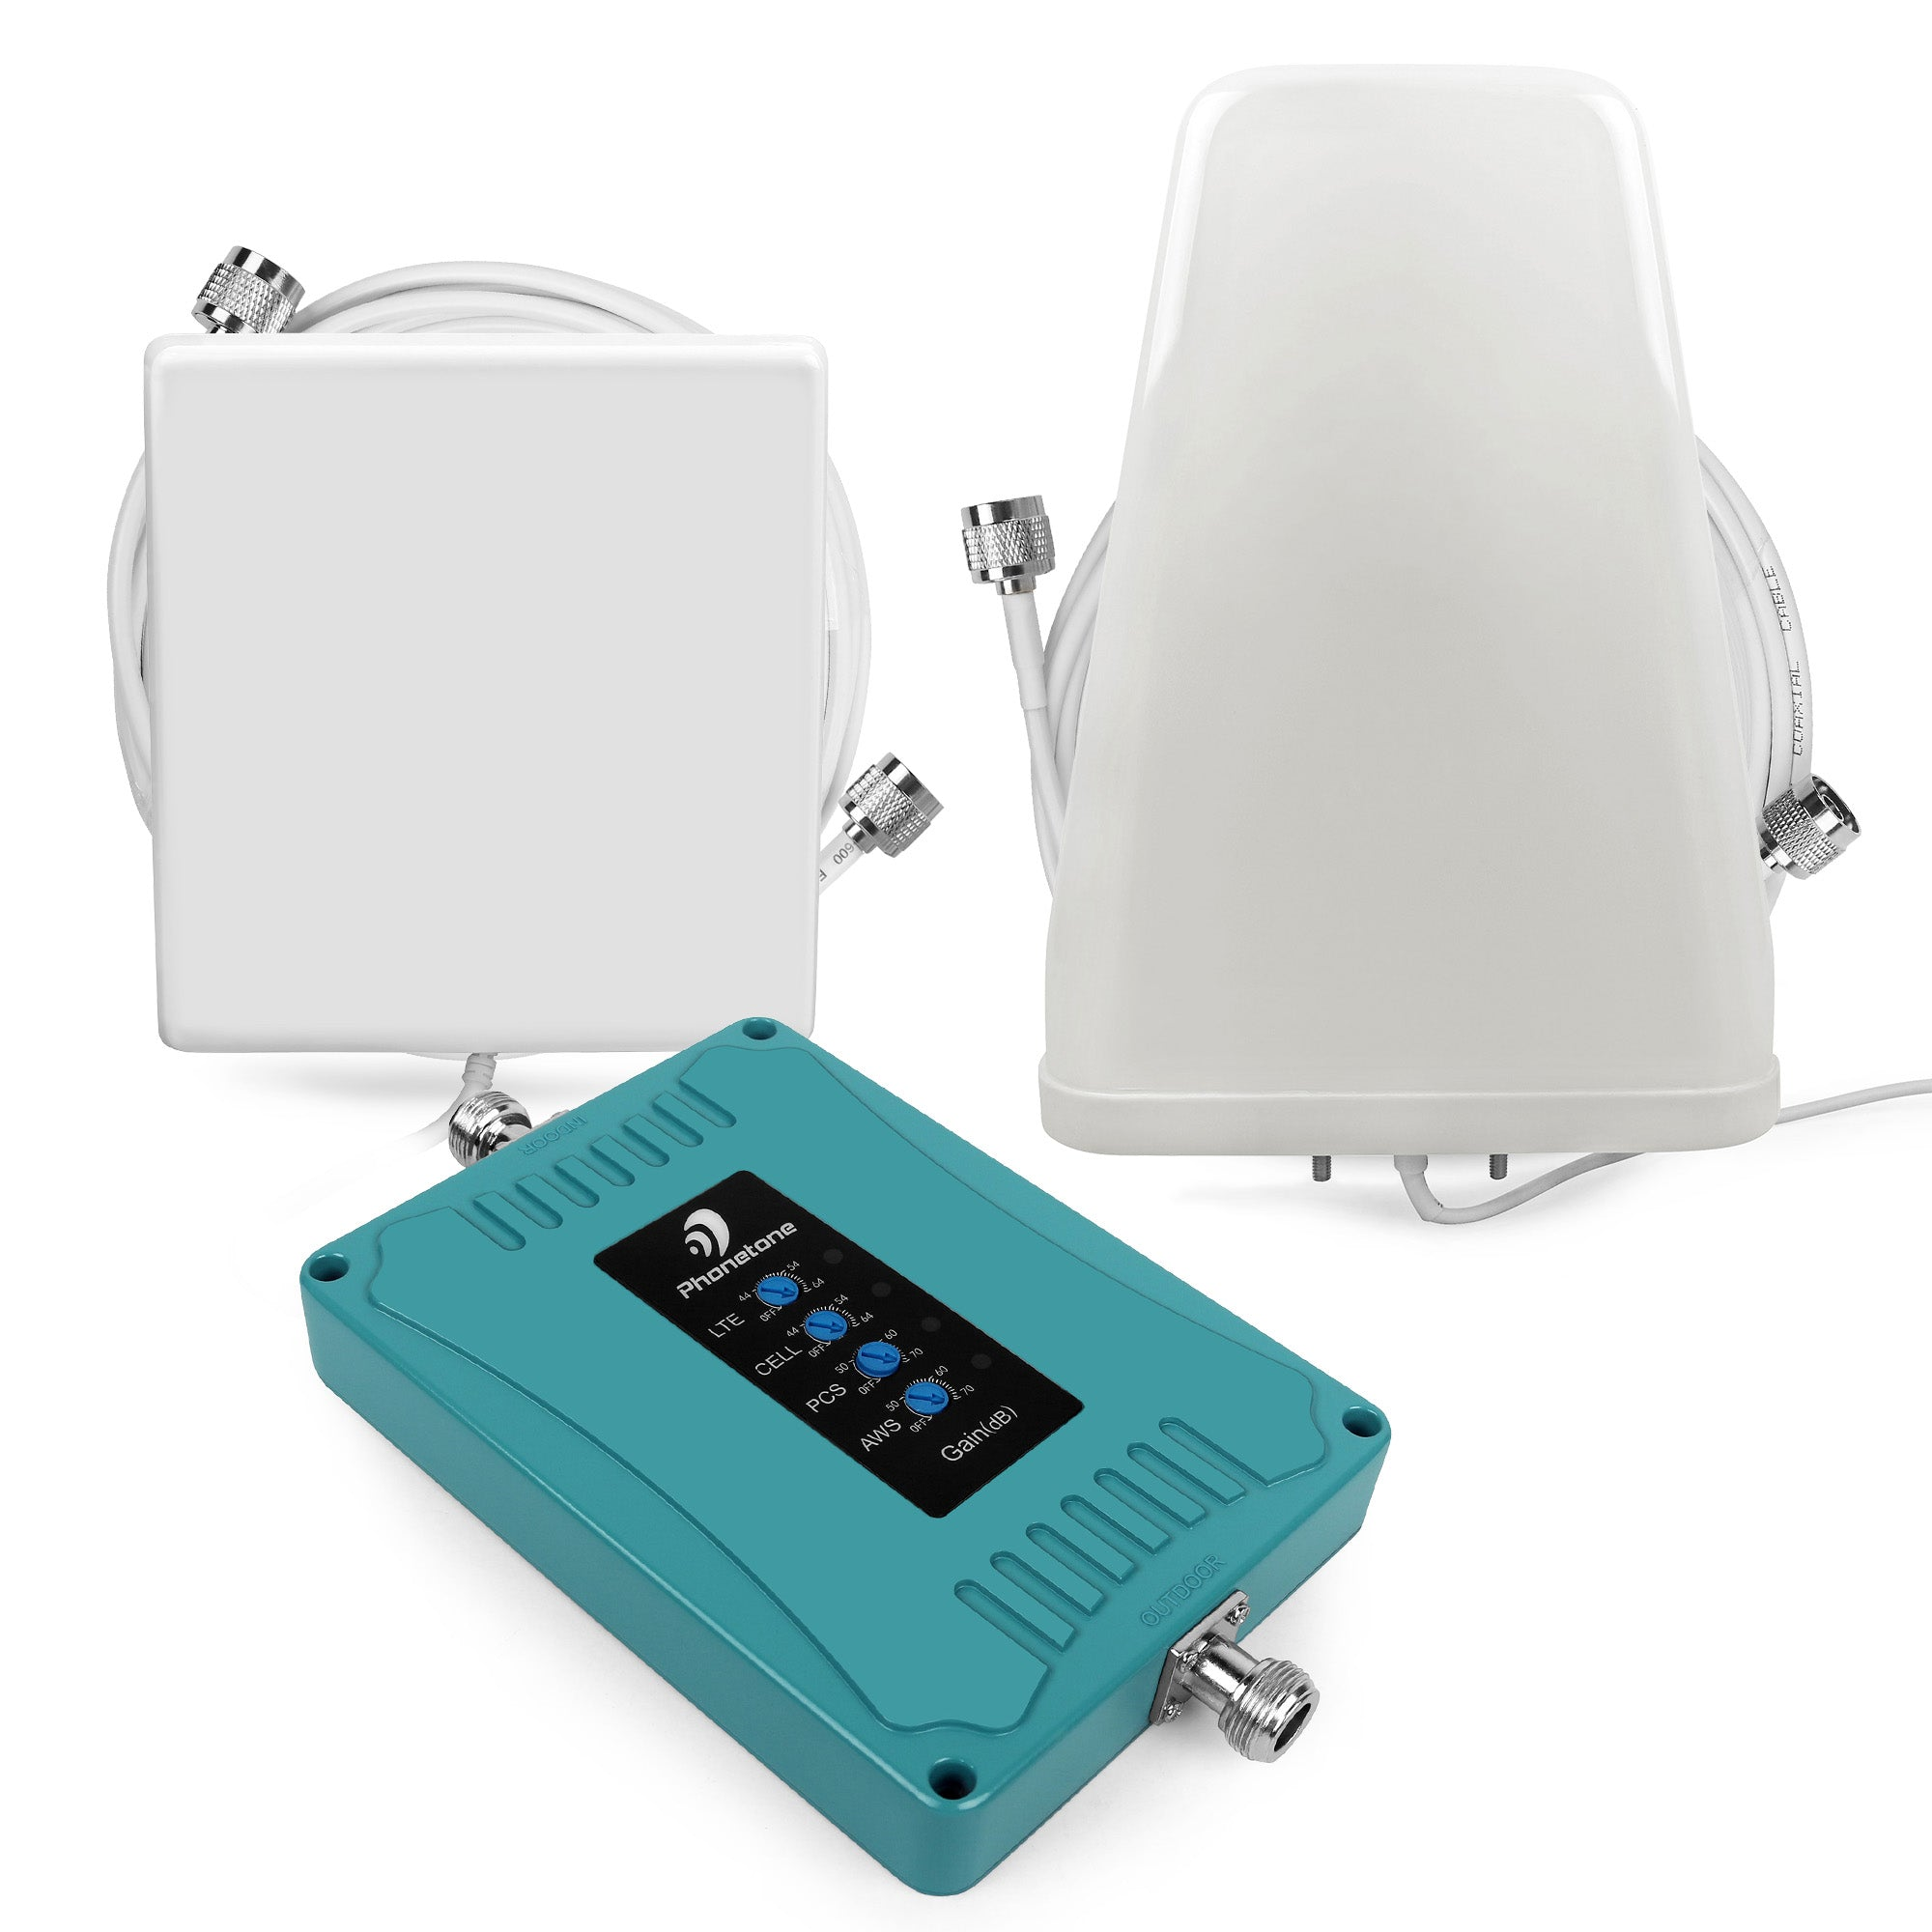 Mobile Phone Booster Kit Five-band 700/850/1900/1700MHz